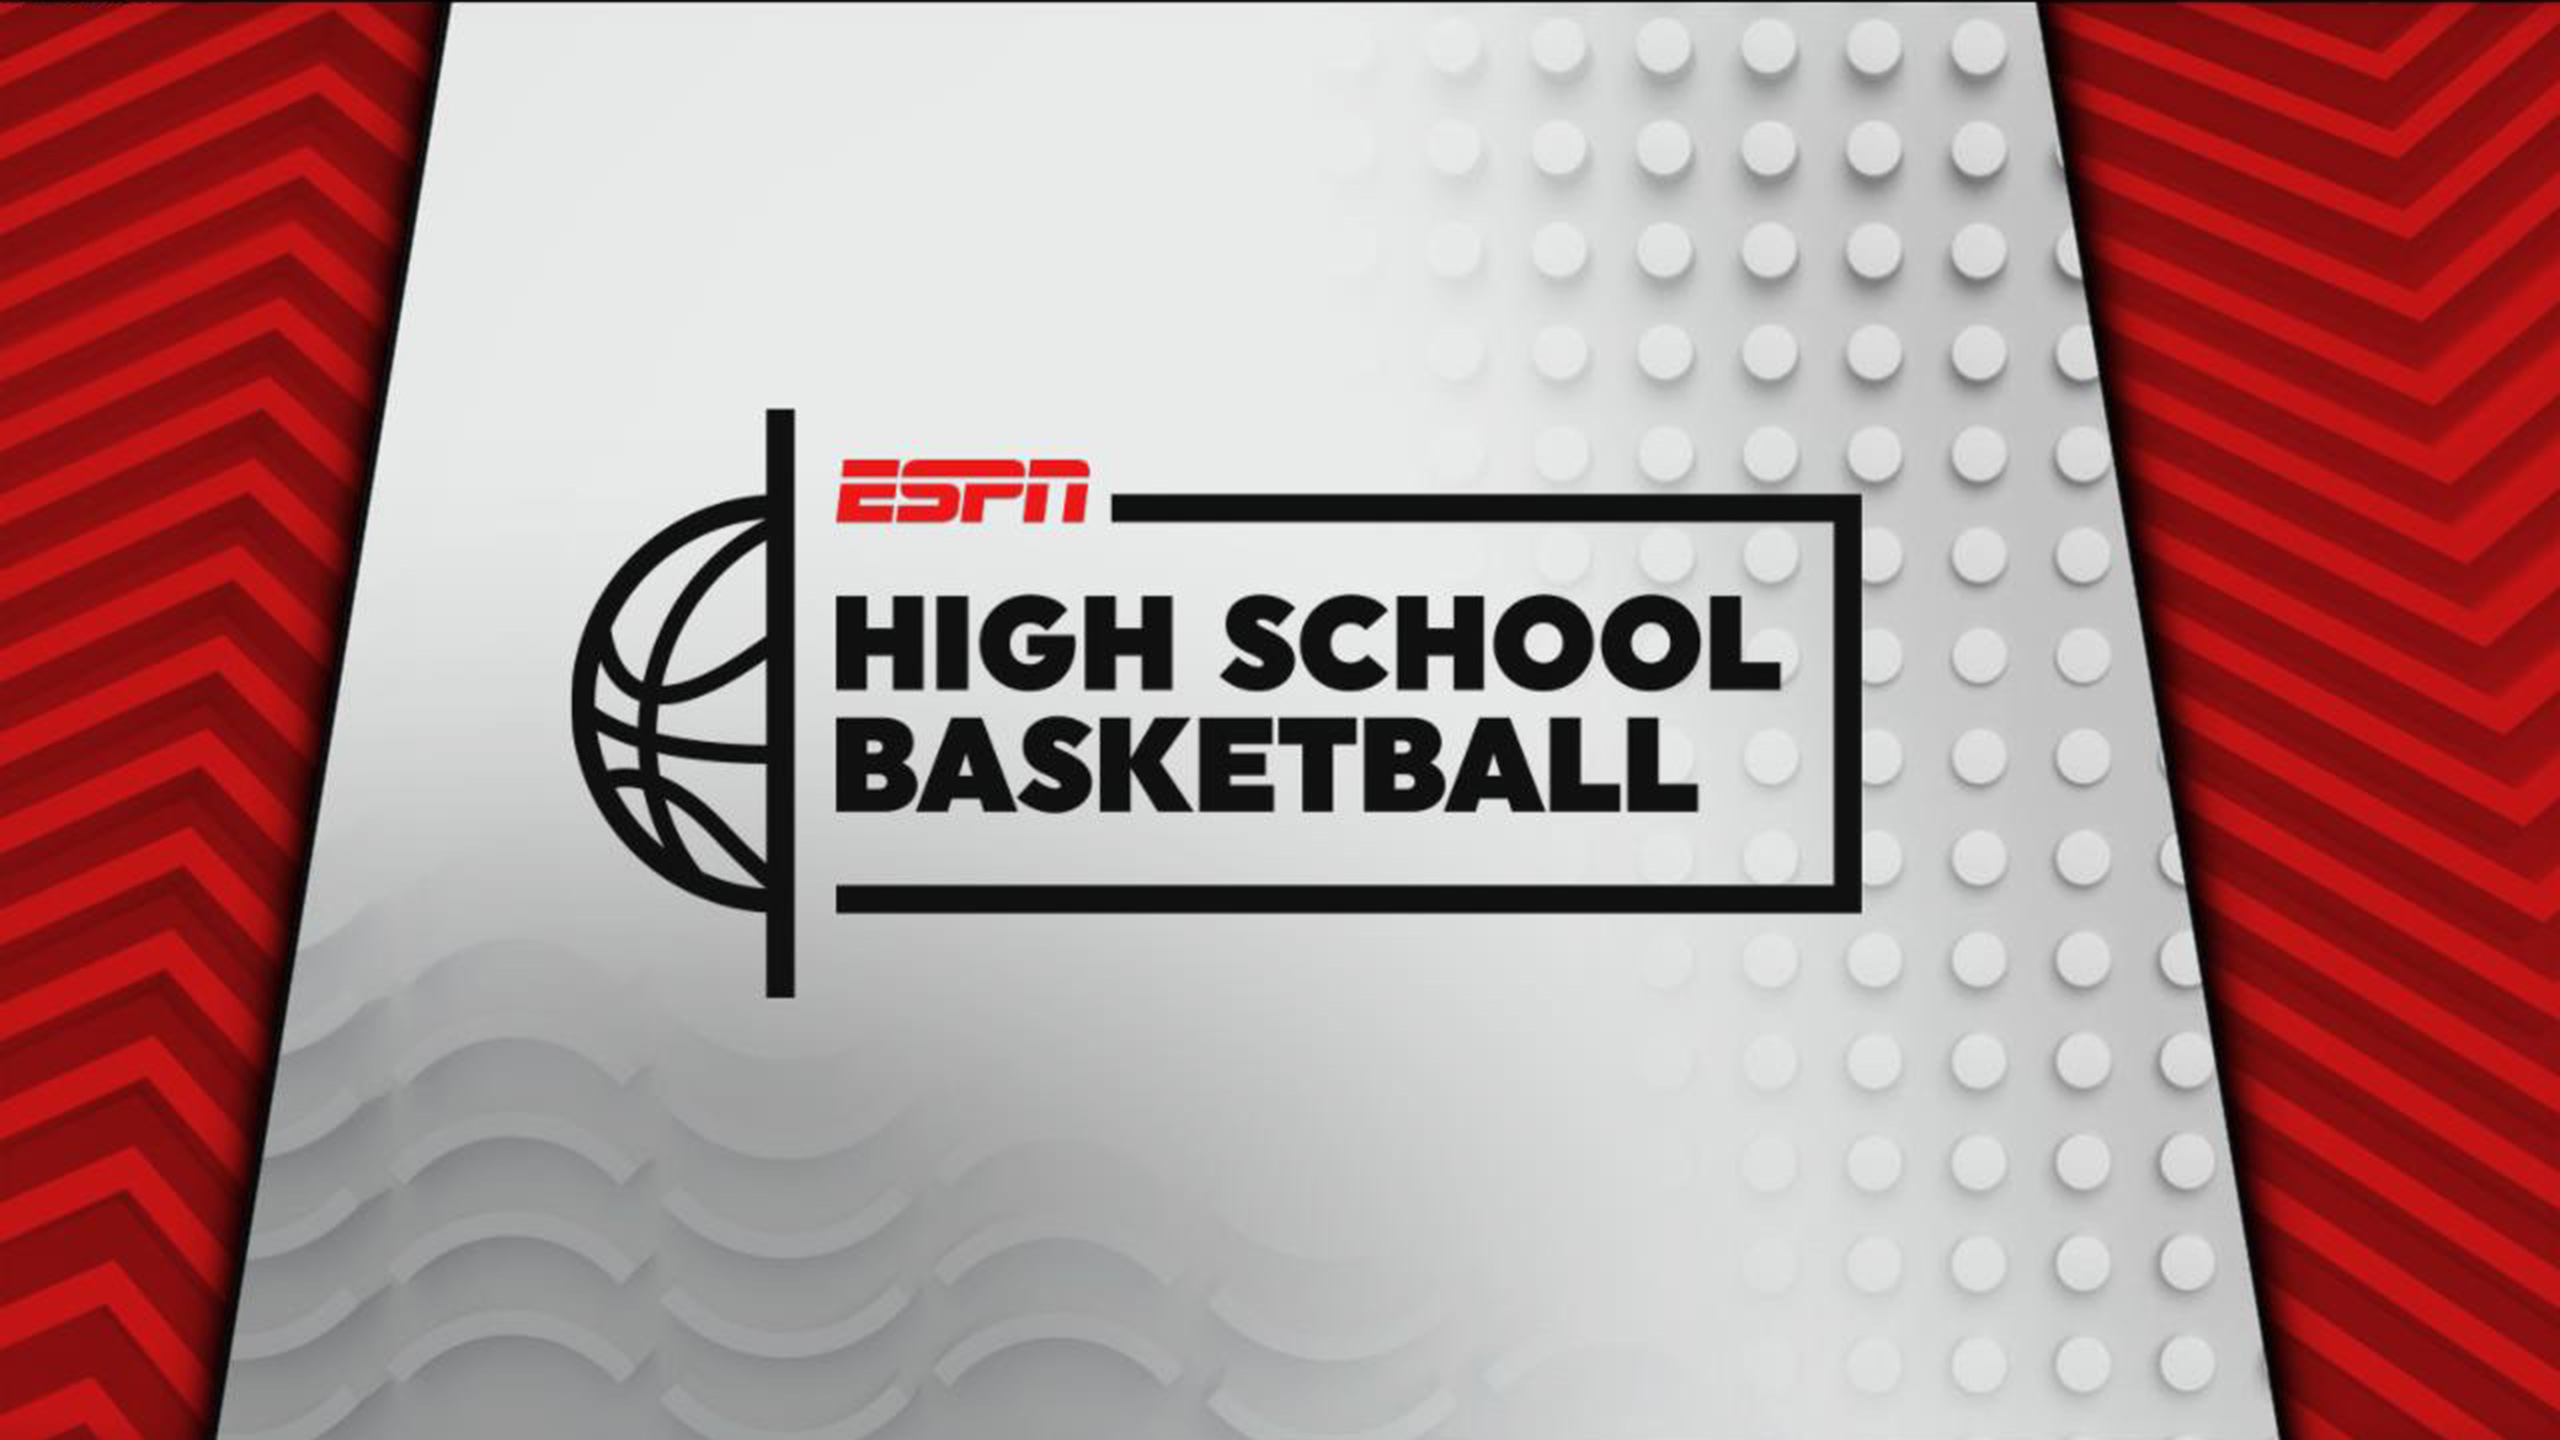 Federal Way (WA) vs. Ranney (NJ) (Boys' HS Basketball)